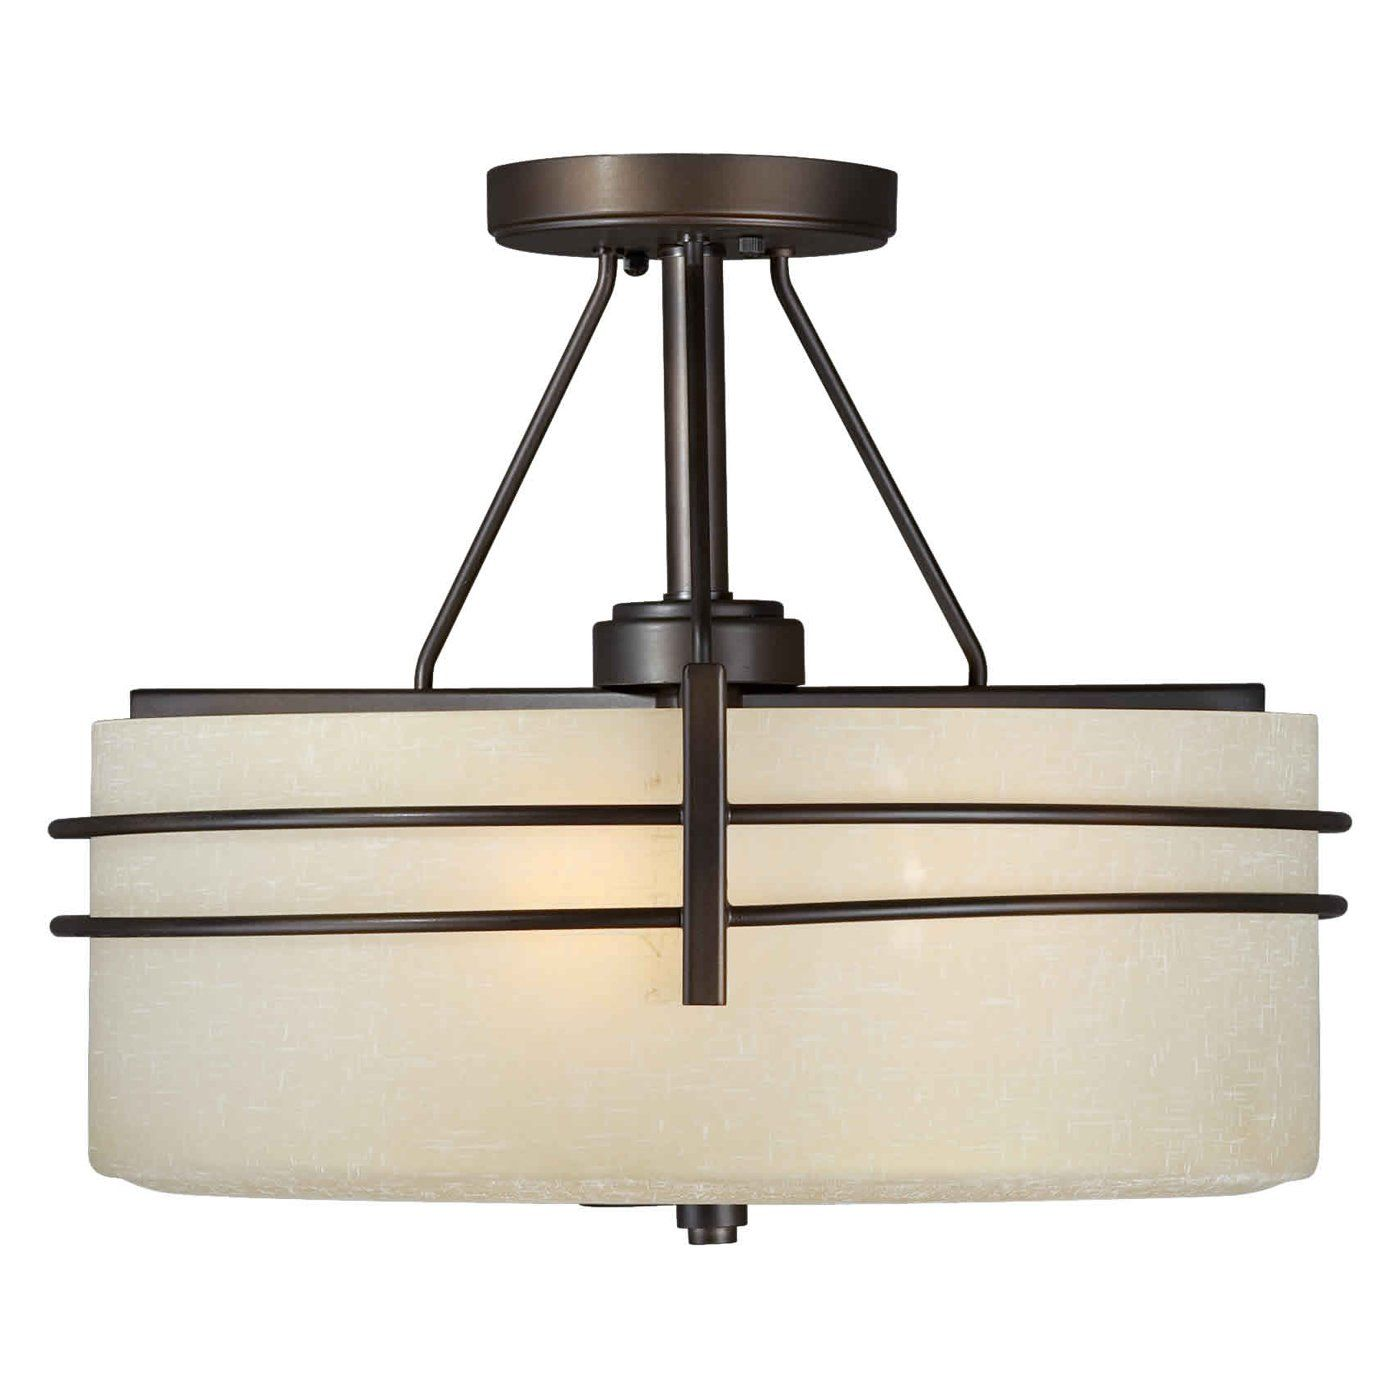 of mount size good gold semi shade ceiling zoom indoor canada and noteworthy ridge flushmount walnut lowes at crystal full chrome lighting drum depot beautiful home regis fs tire drawing wayfair glass loading room amazon looking coast xl chandelier chandeliers with lights polished flush light pendant